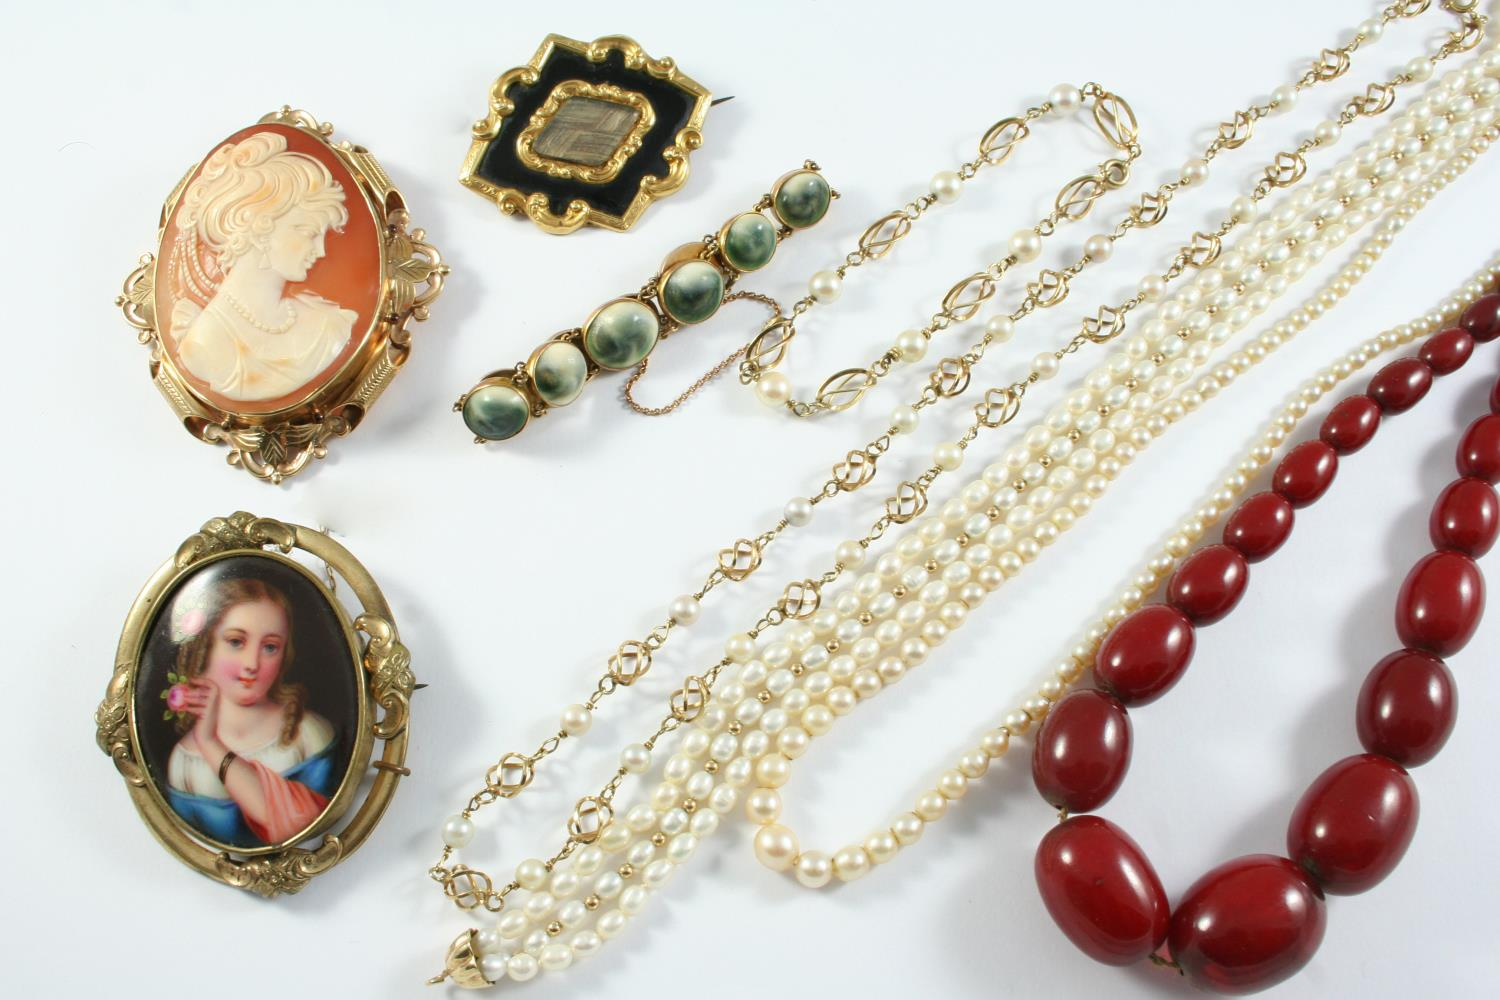 A QUANTITY OF JEWELLERY including a carved shell cameo brooch in ornate gold mount, a Victorian